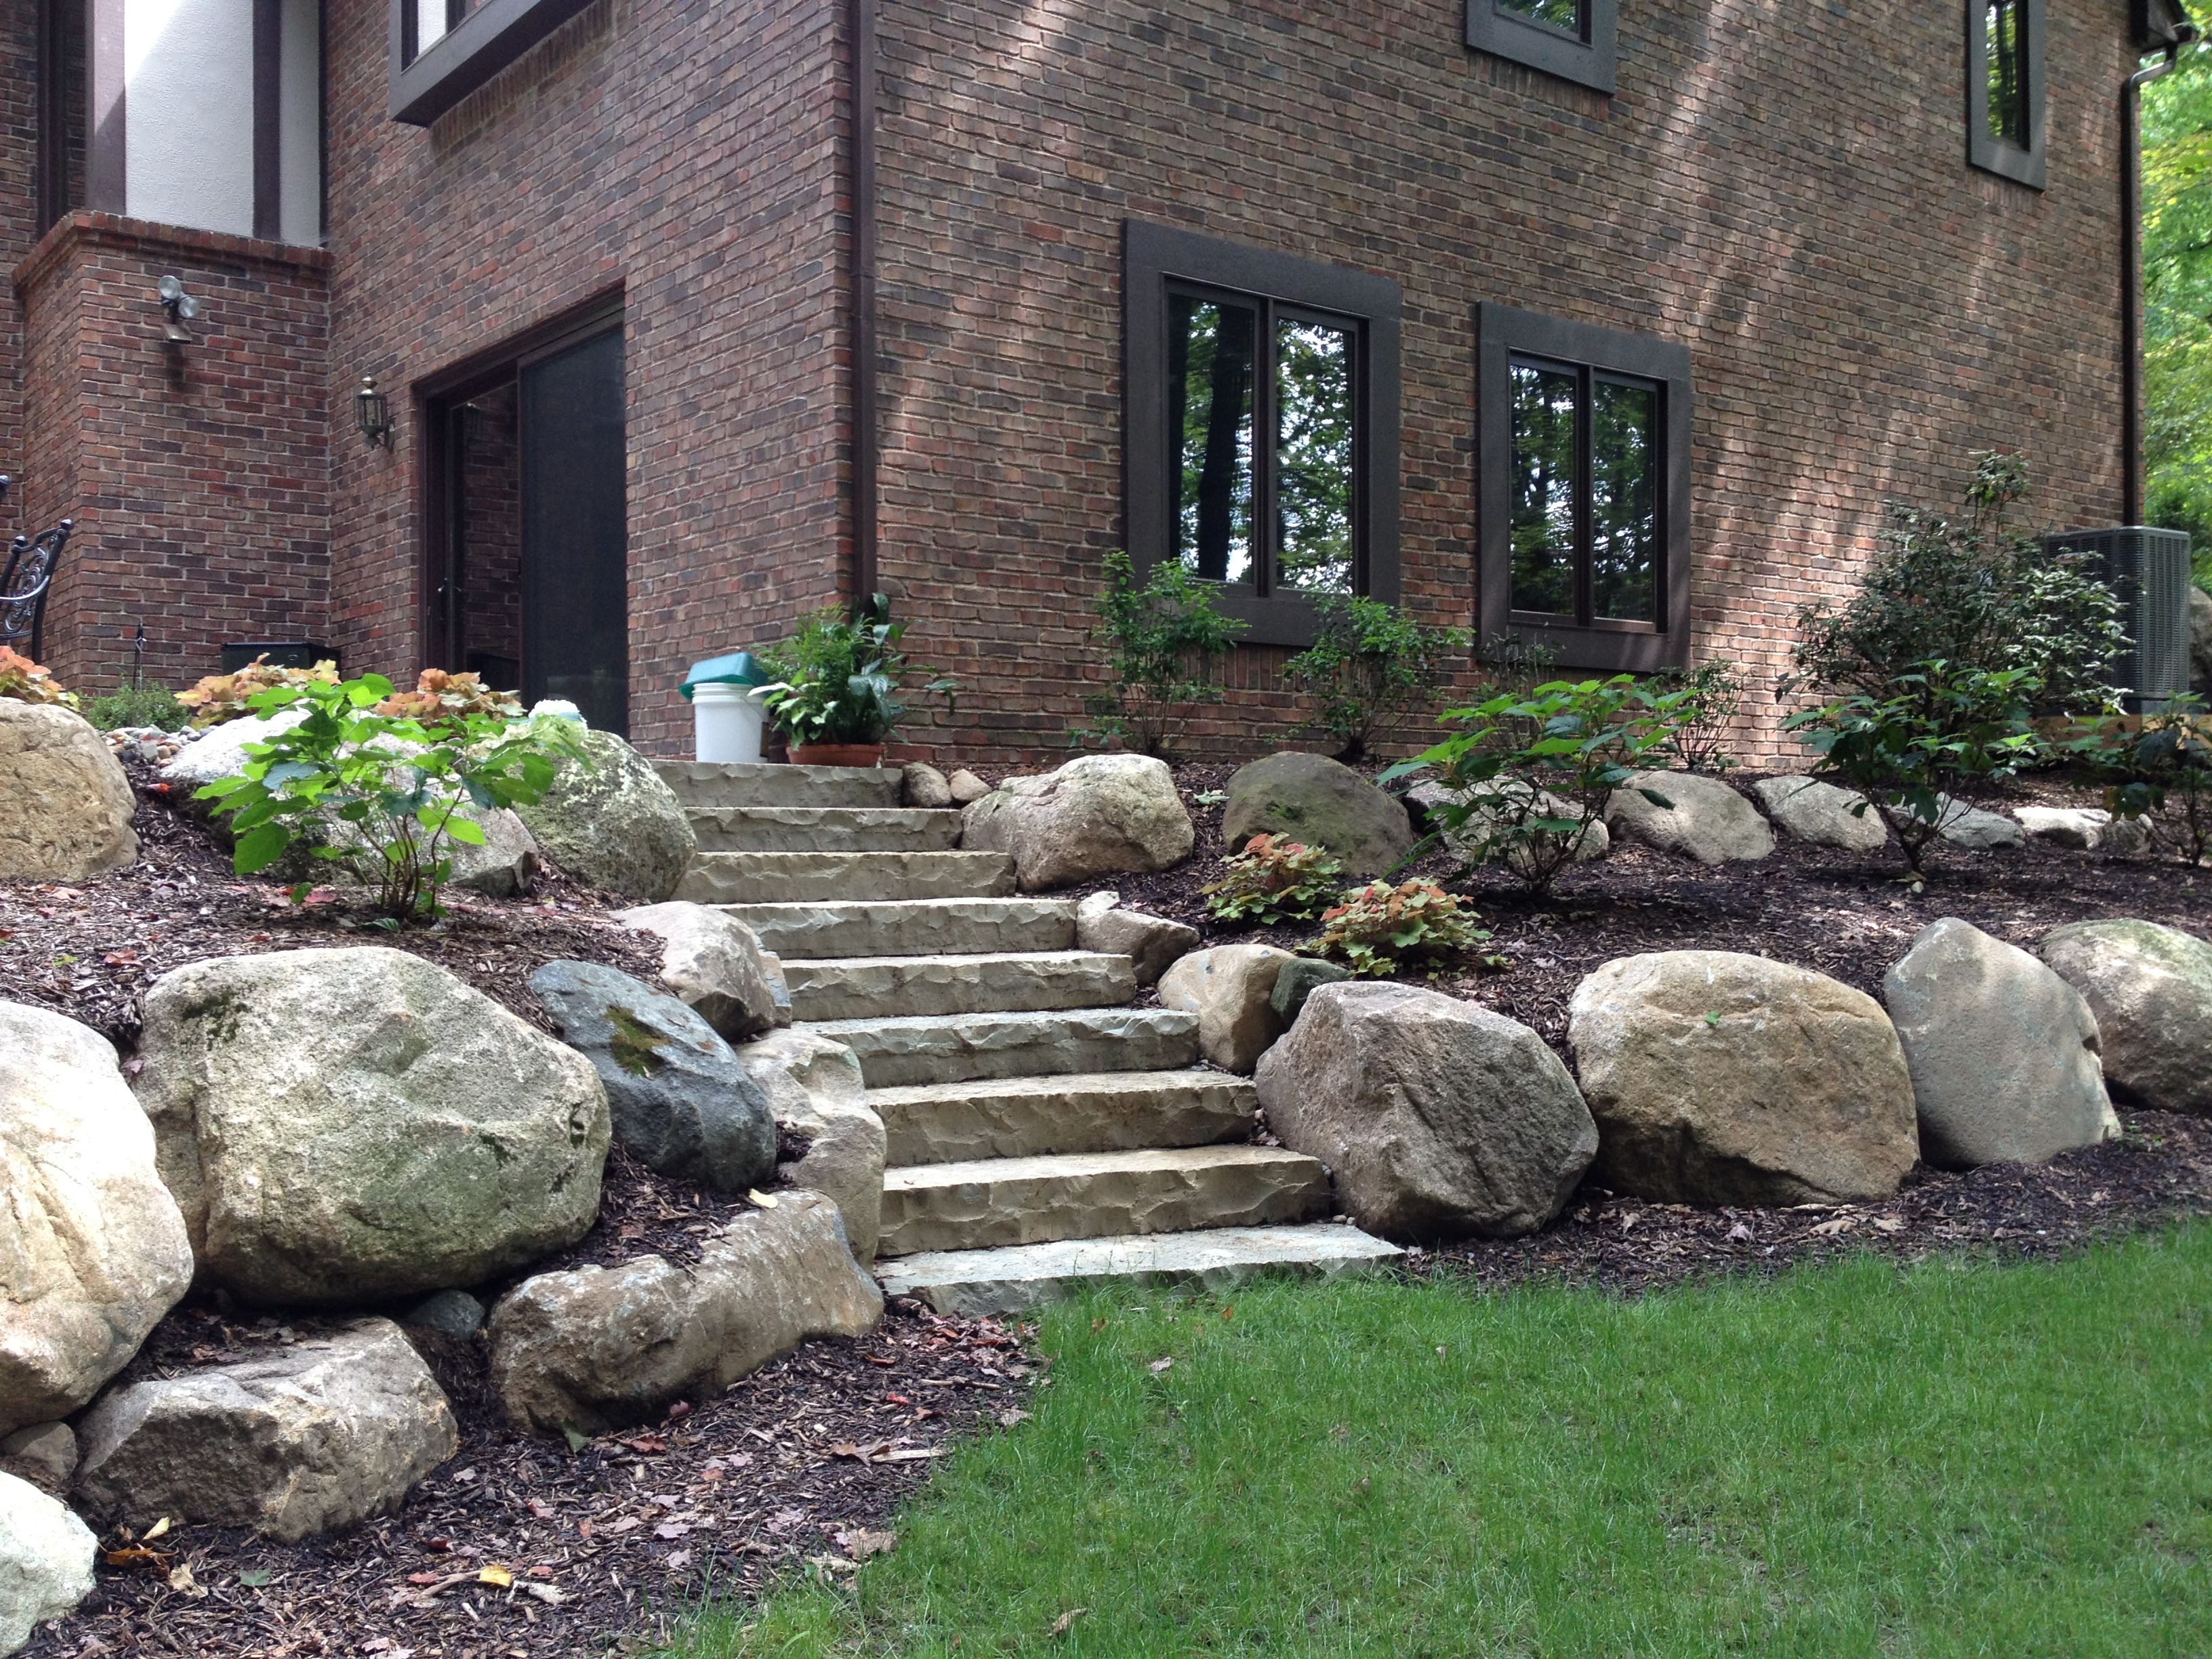 Best 20 Boulder Retaining Wall Ideas On Pinterest Rock Wall - small retaining wall design